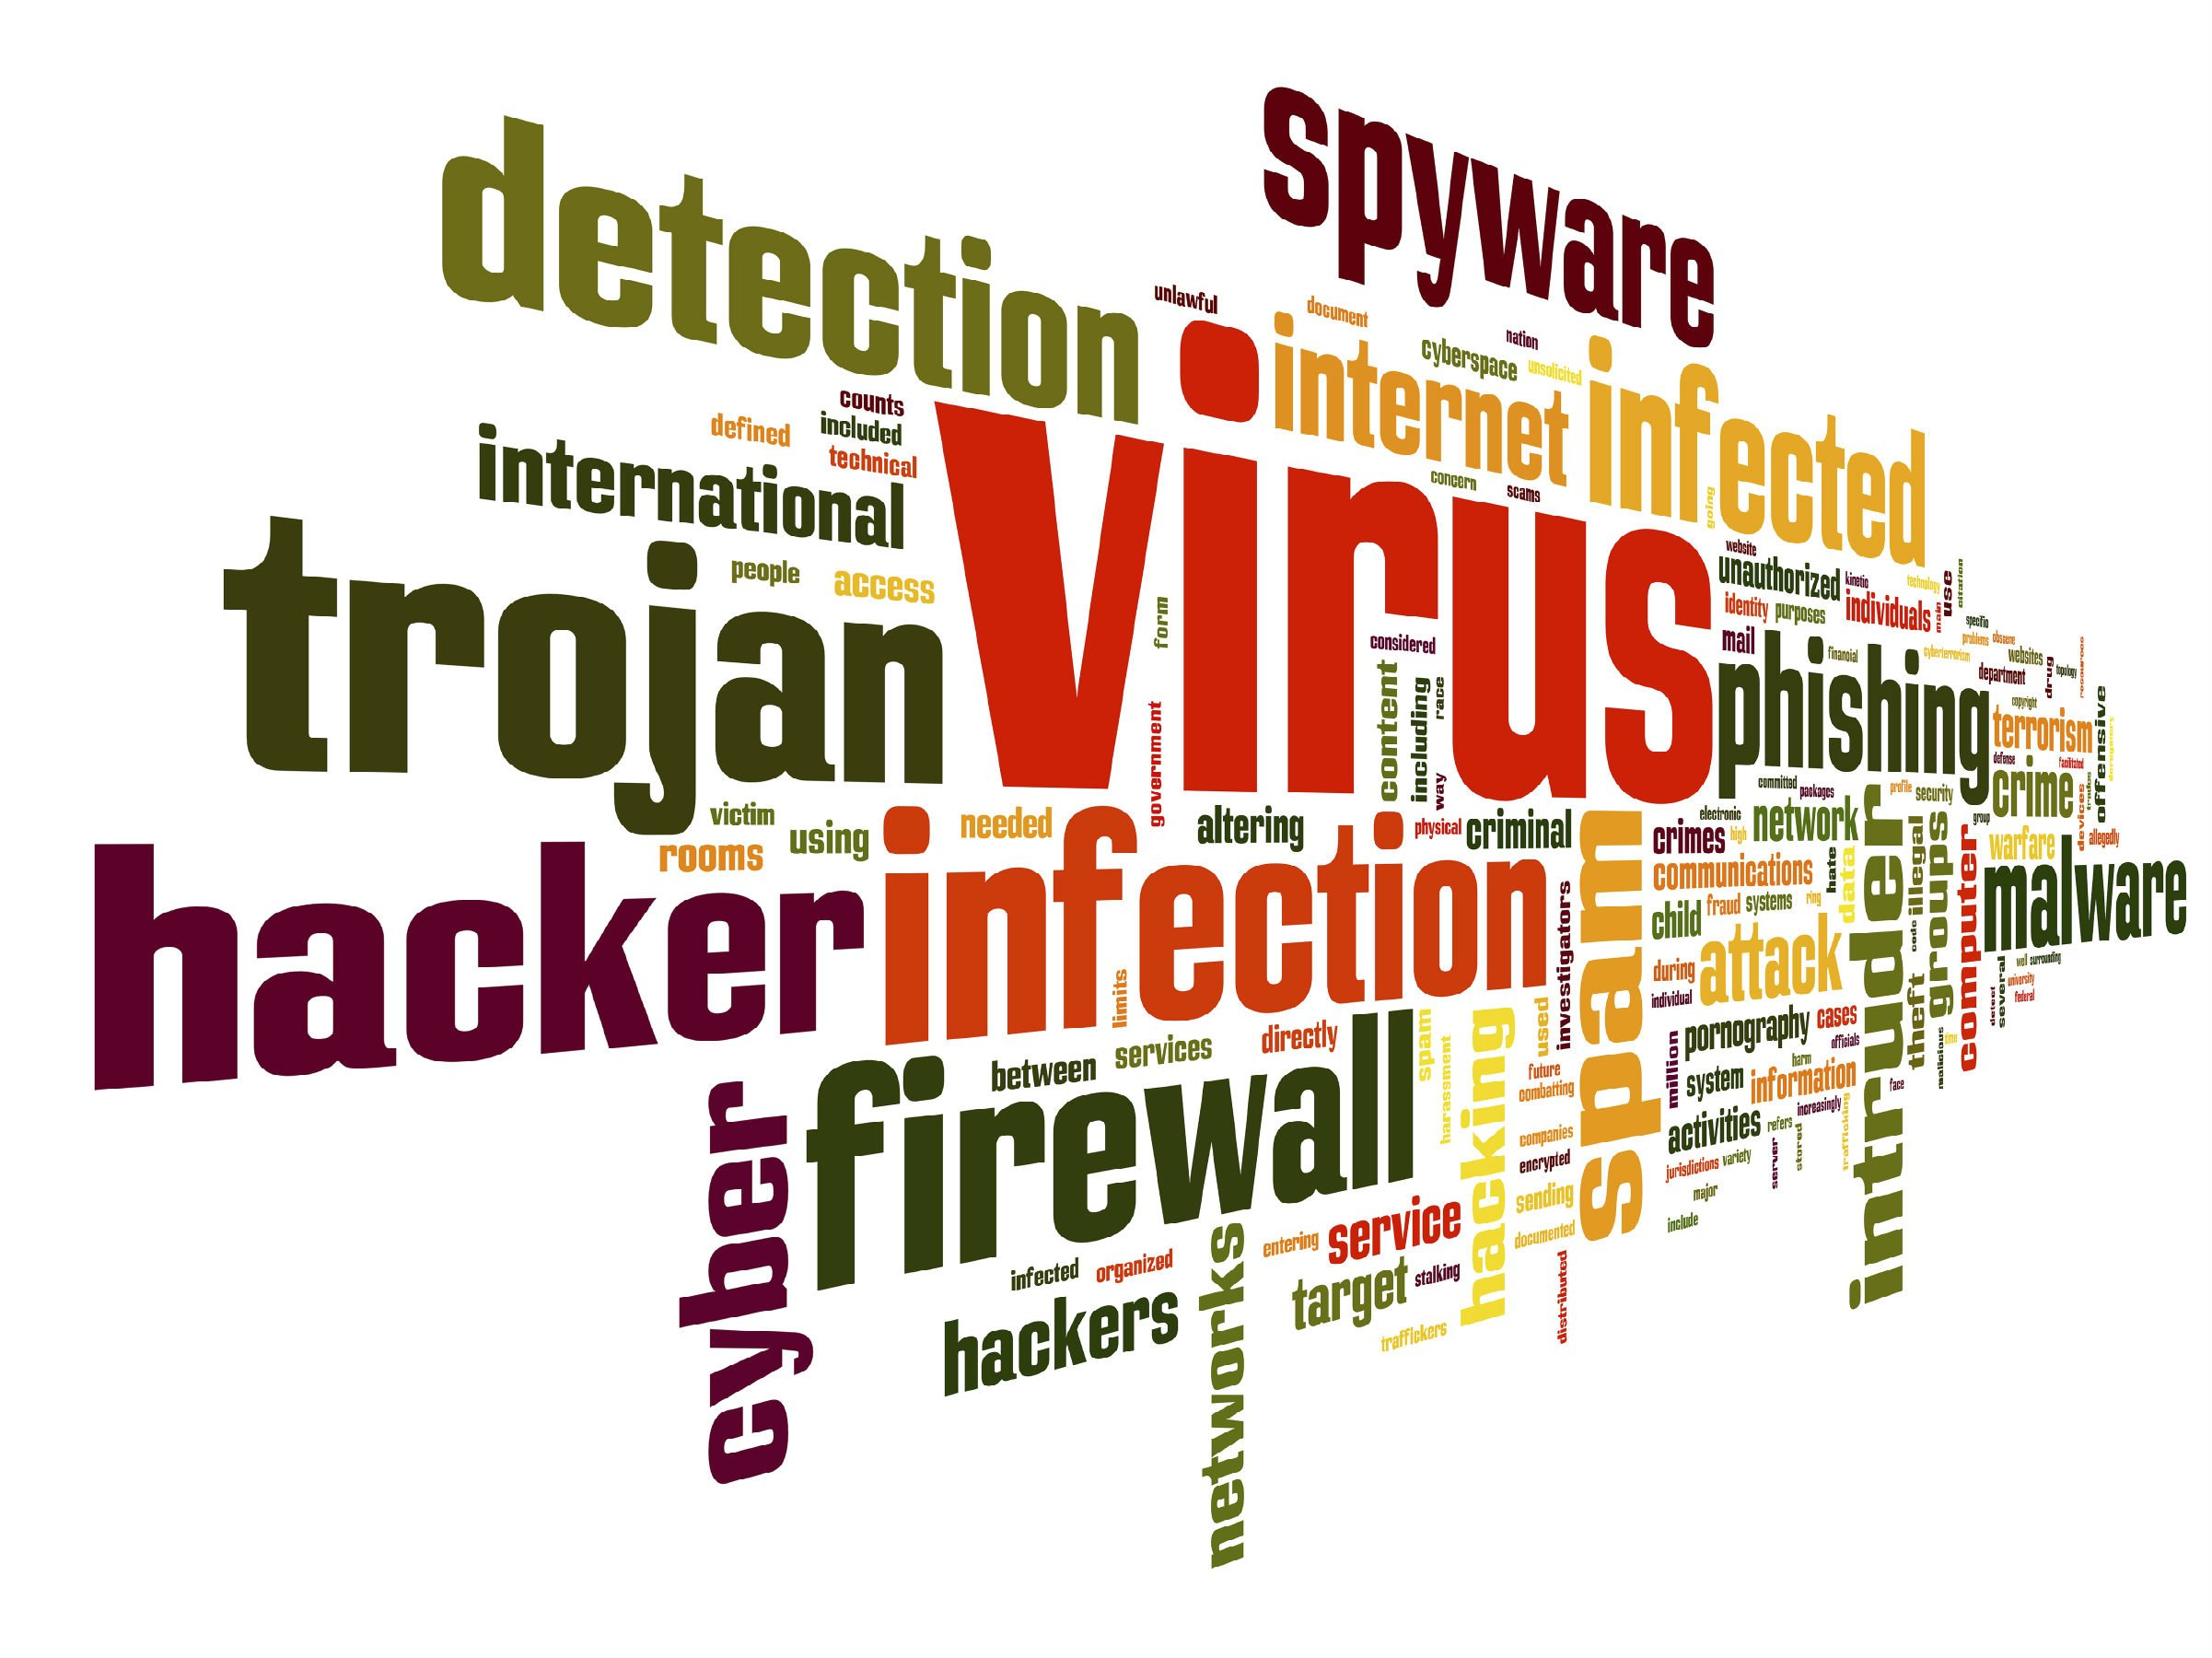 computer virus danger hacking hacker internet sadic (42)